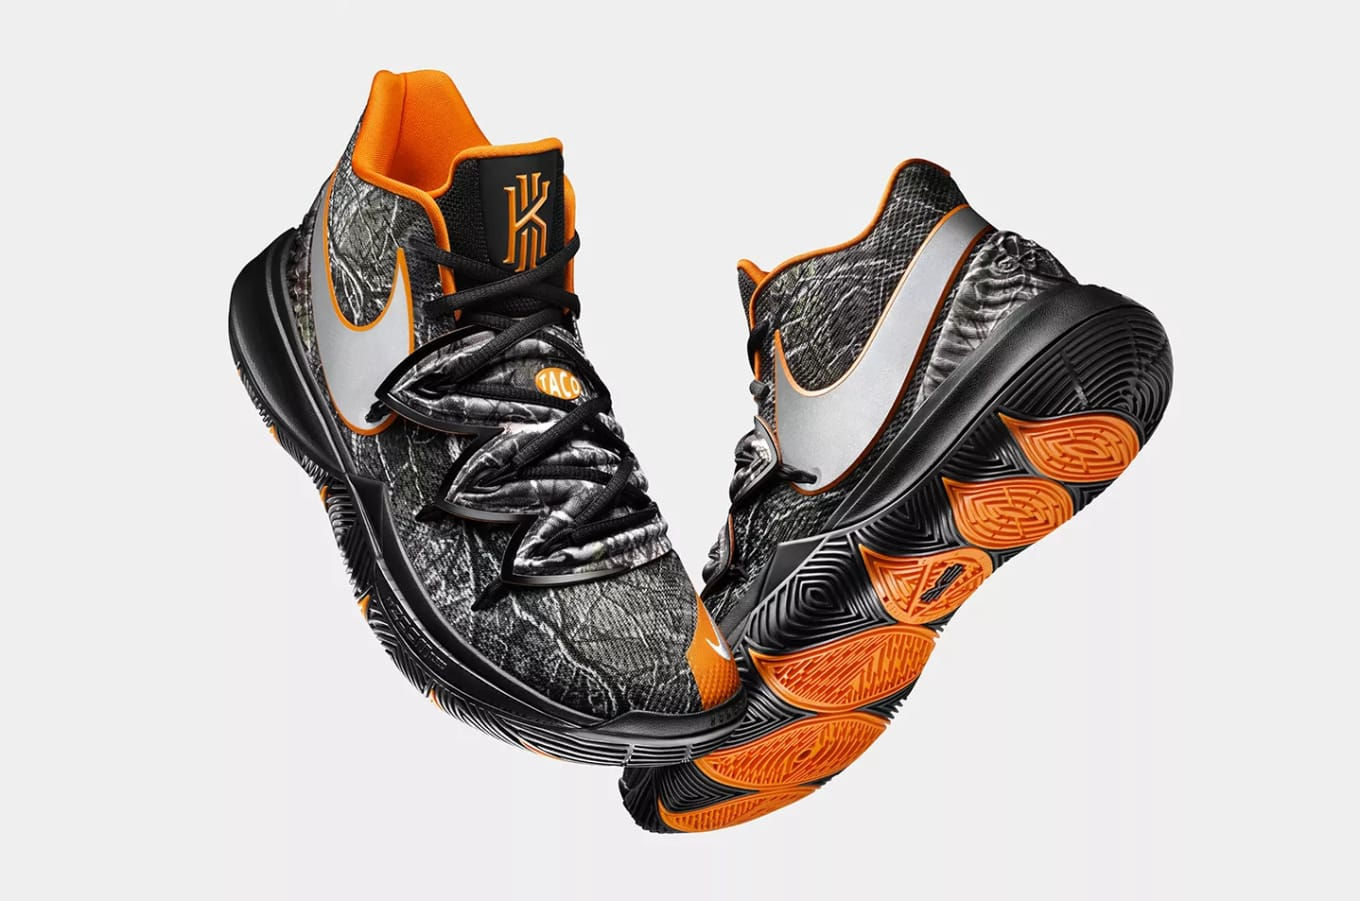 b6cf88d6ef70 New Release Date for the  Taco  Kyrie 5. Set to release later this month.